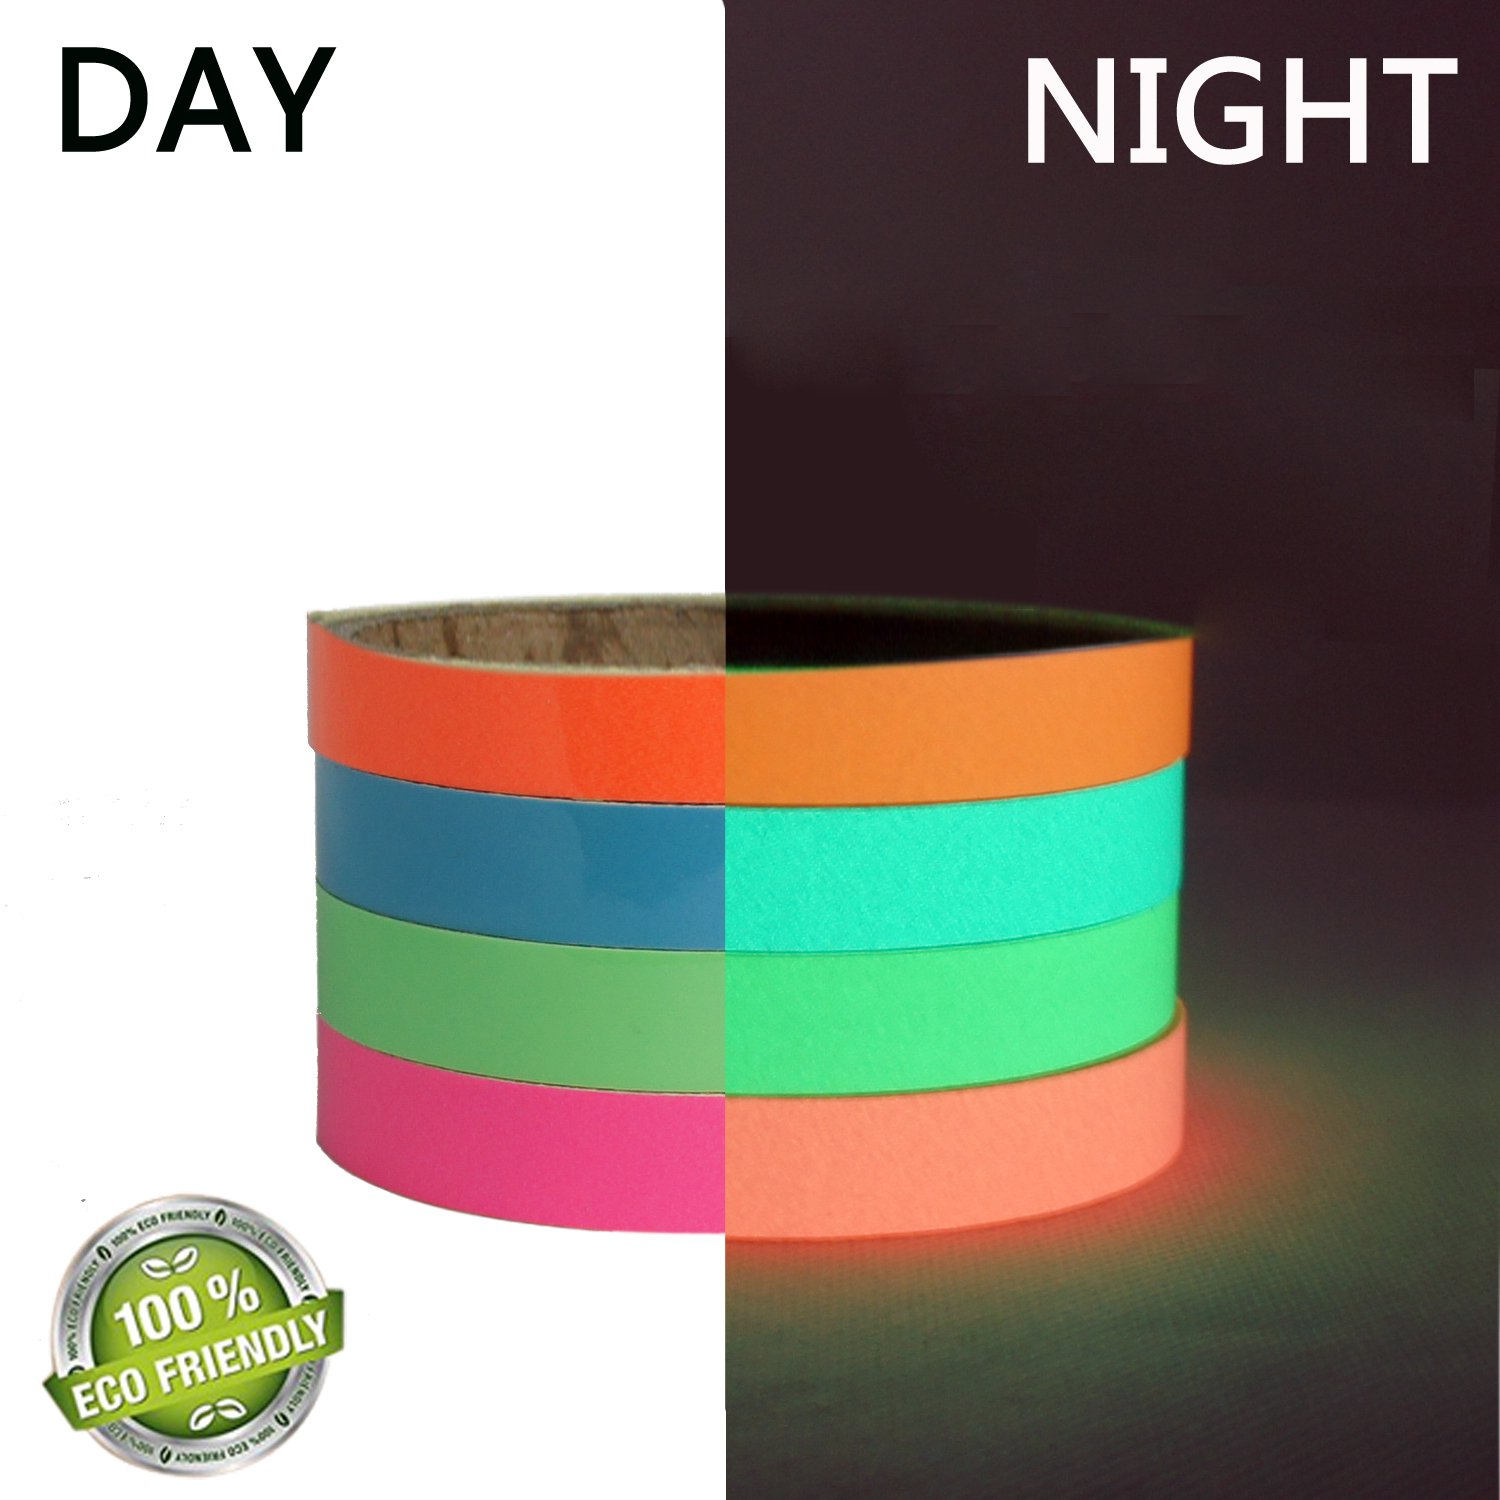 4 Rolls Luminous Tape Sticker 10 feet x 0.6 inch Removable Waterproof Photoluminescent Glow in the Dark DIY Safety Sign Tape,Use For Marking Stairs and Exits